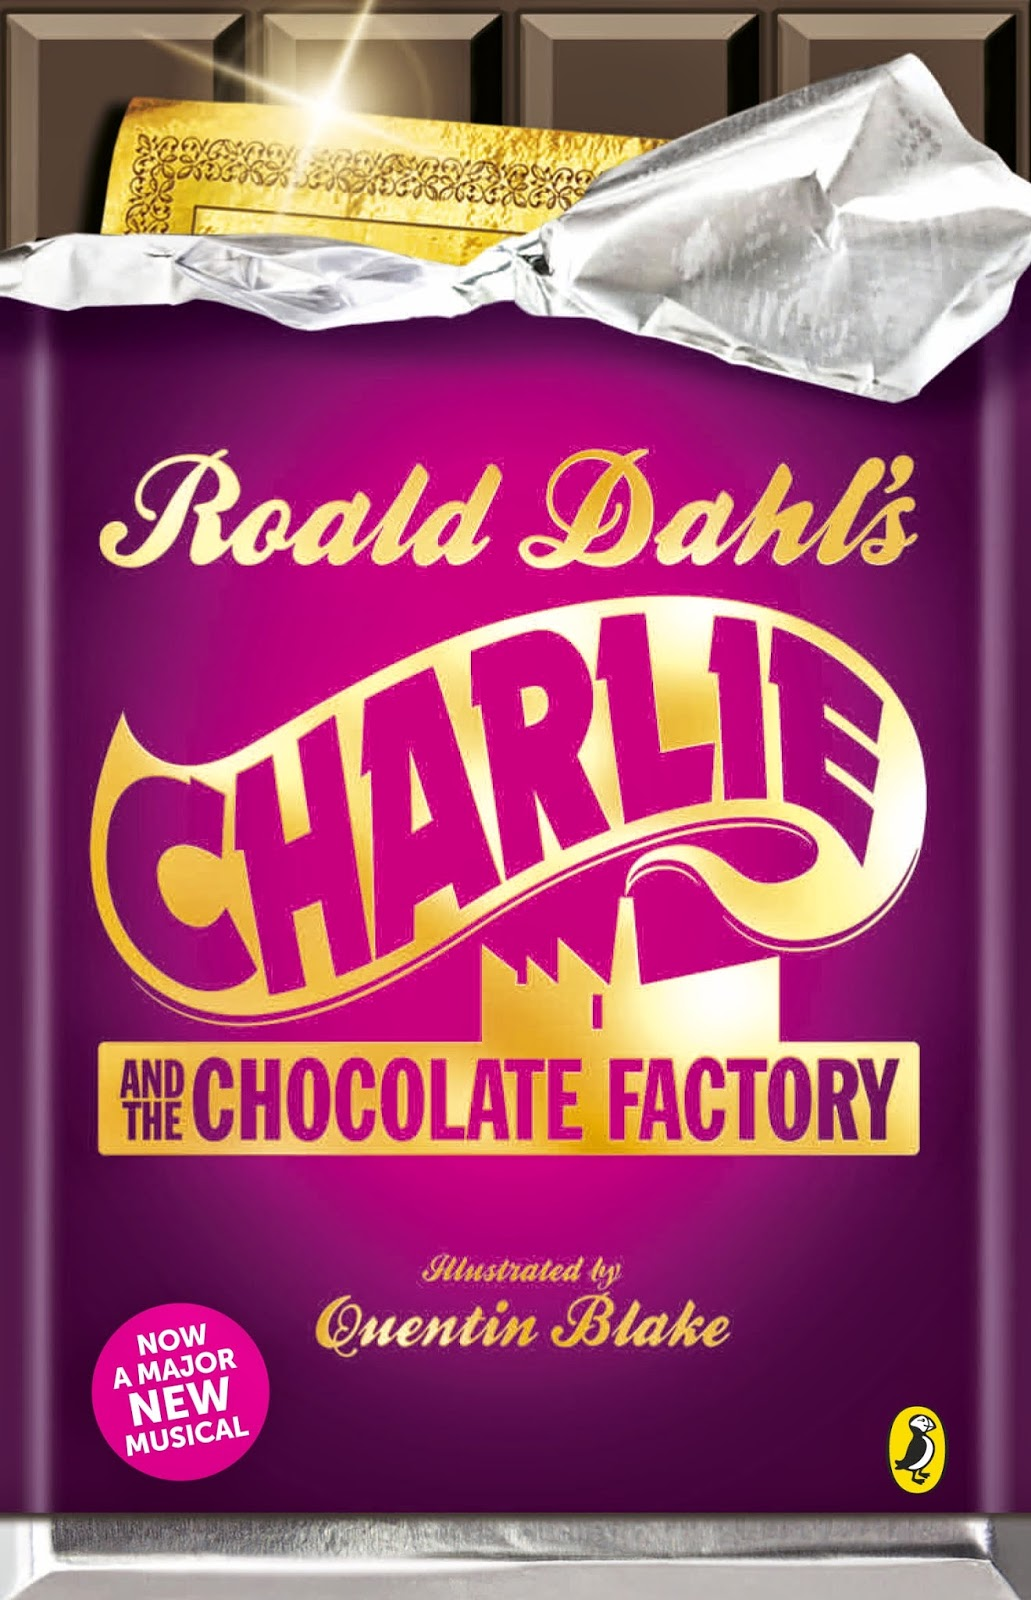 Charlie and The Chocolate Factory by Roald Dahl | Diva Booknerd